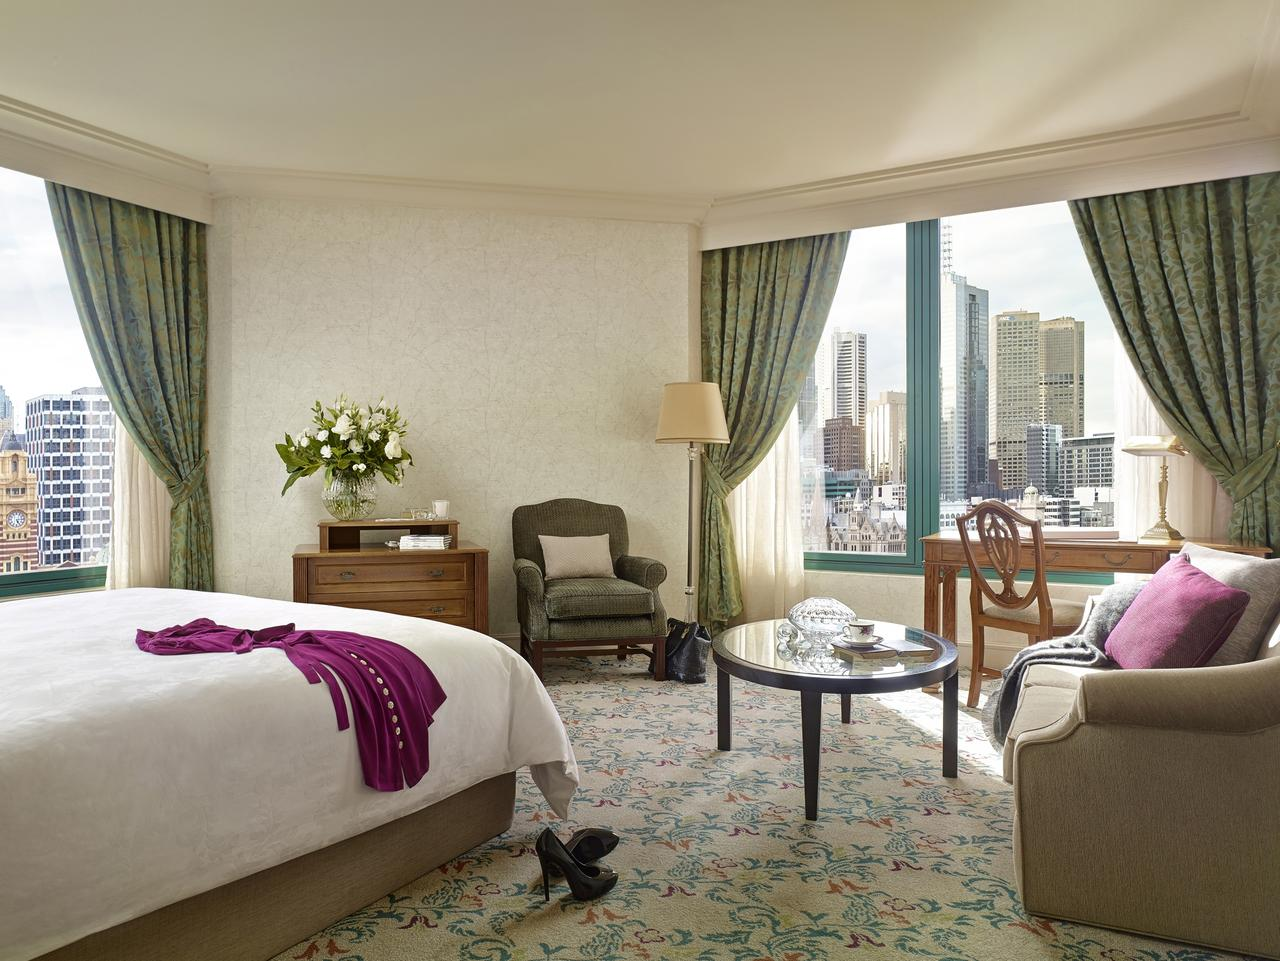 Supplied Travel WHAT'S YOUR BUDGET: SOUTHBANK. The Langham Melbourne Executive Room. For story by Celeste Mitchel